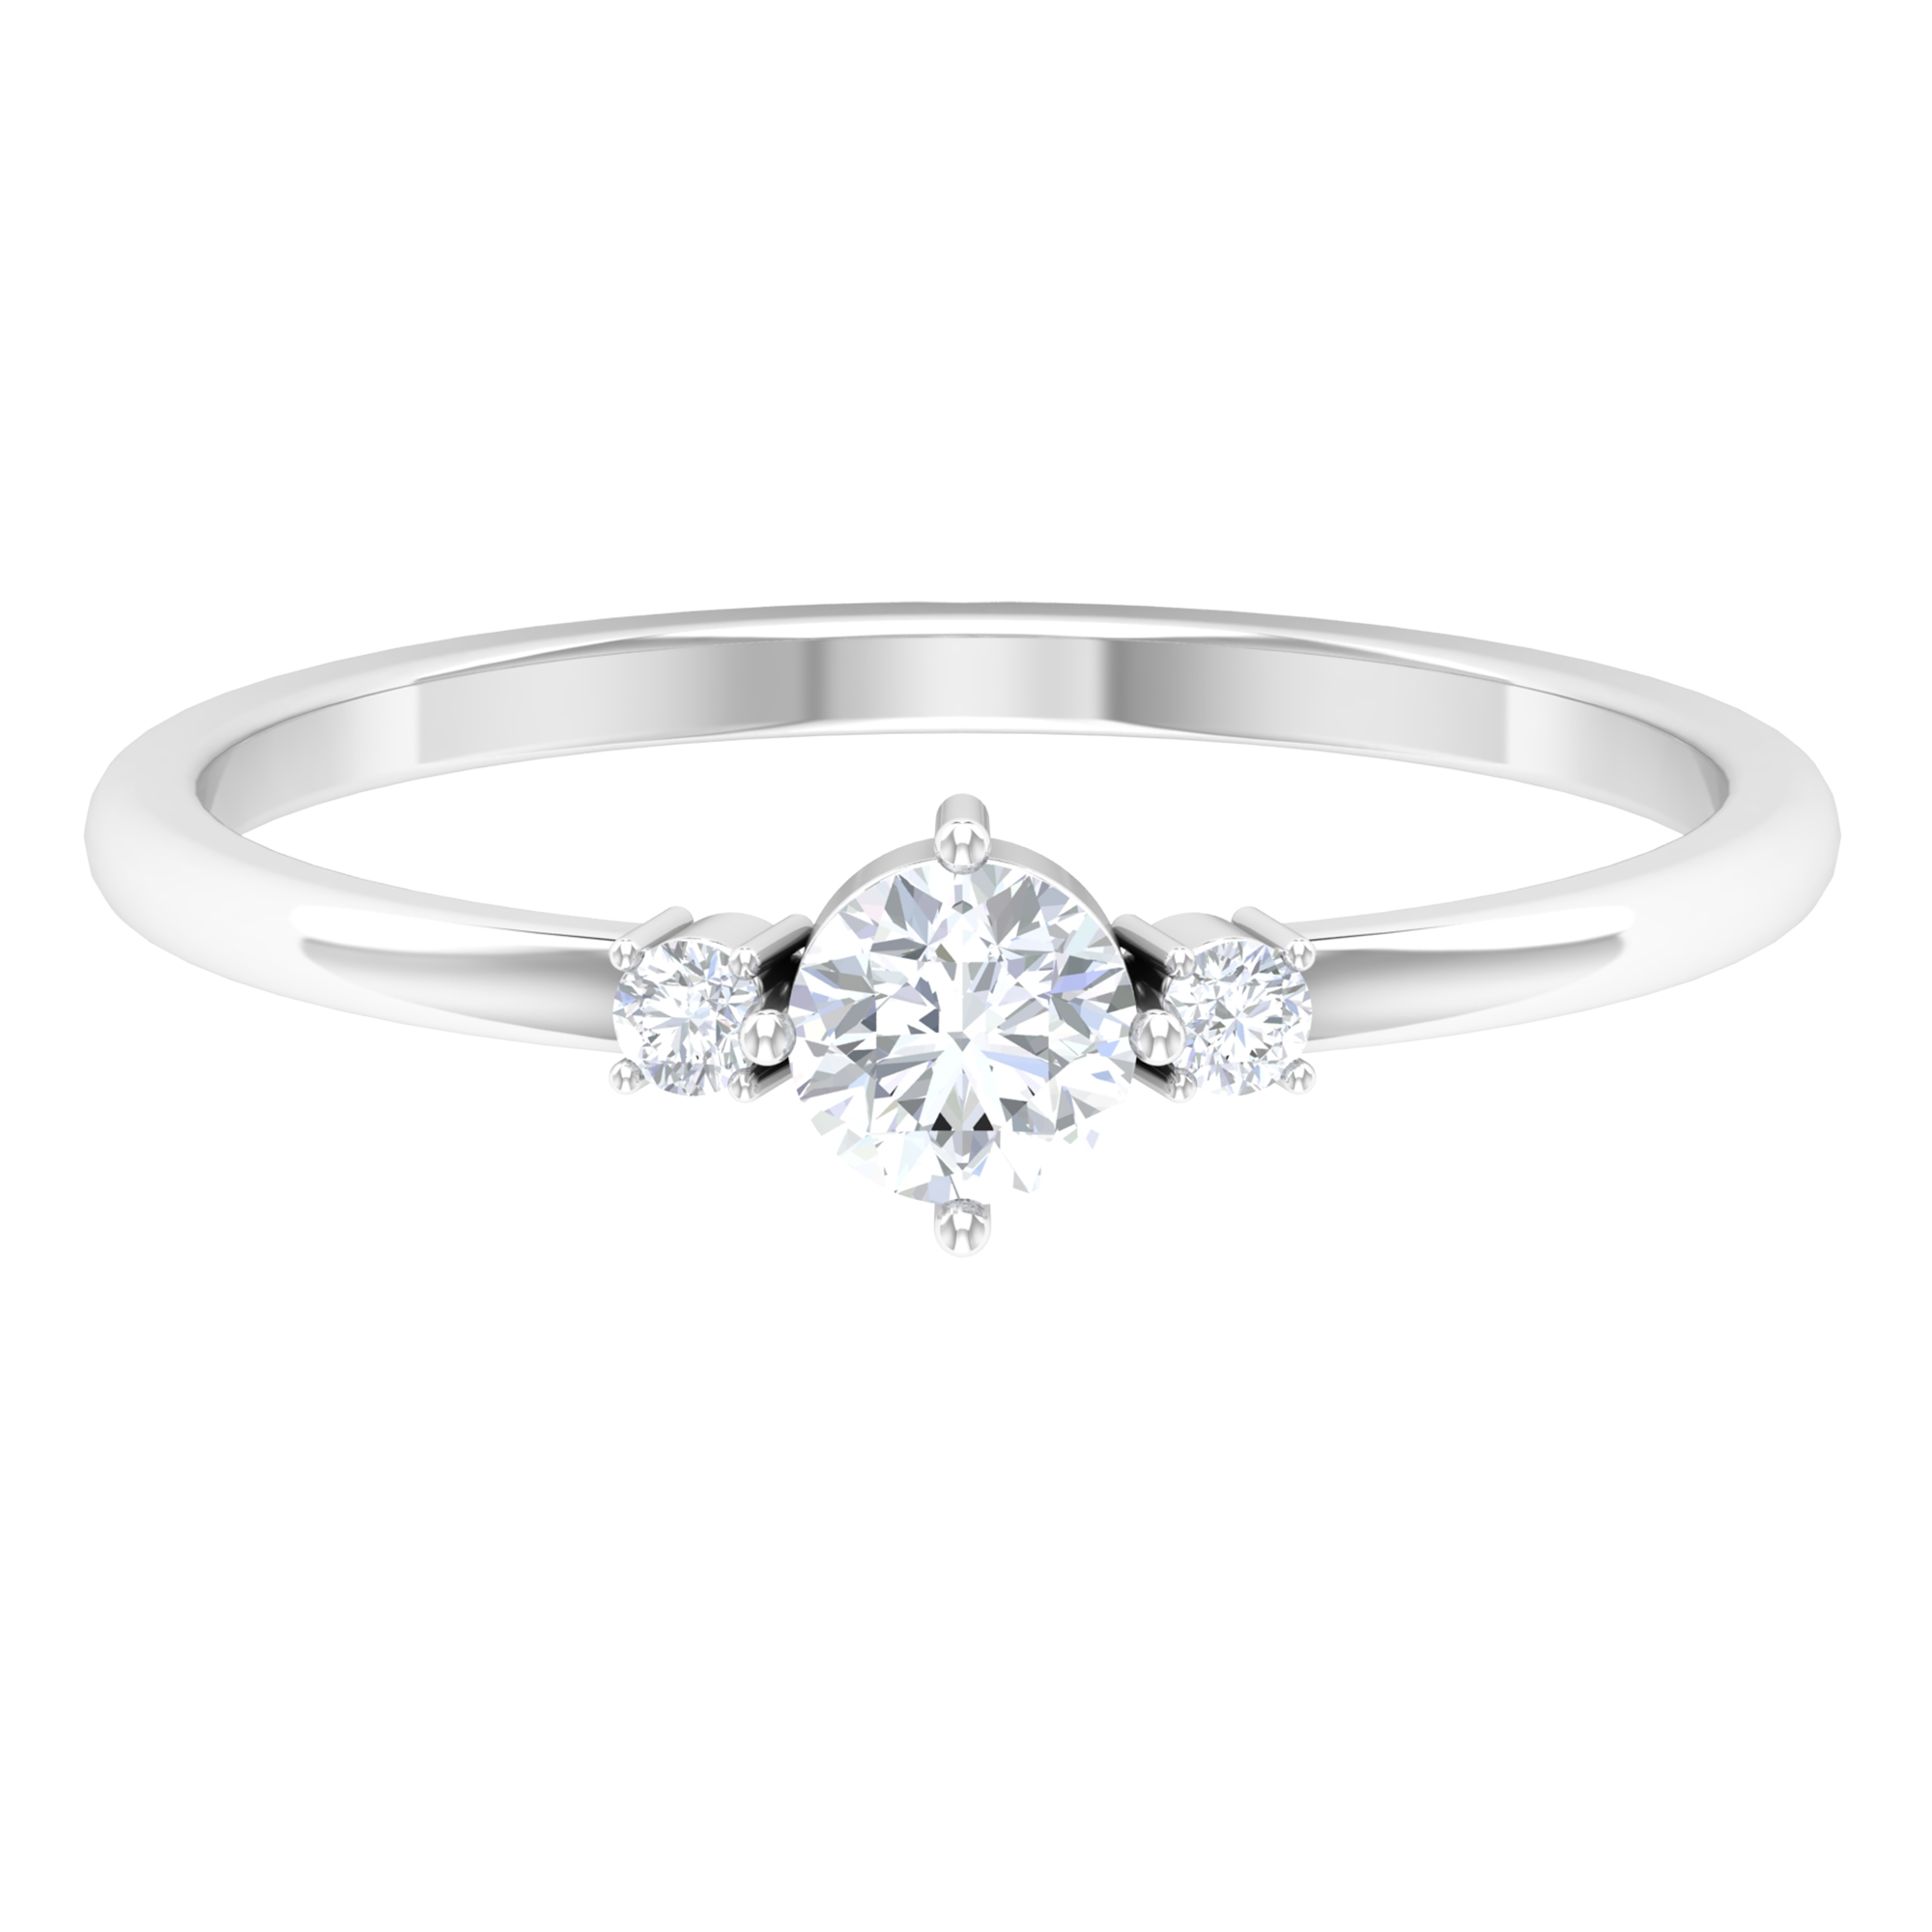 1/4 CT Round Cut Dainty Diamond Ring in Prong Setting